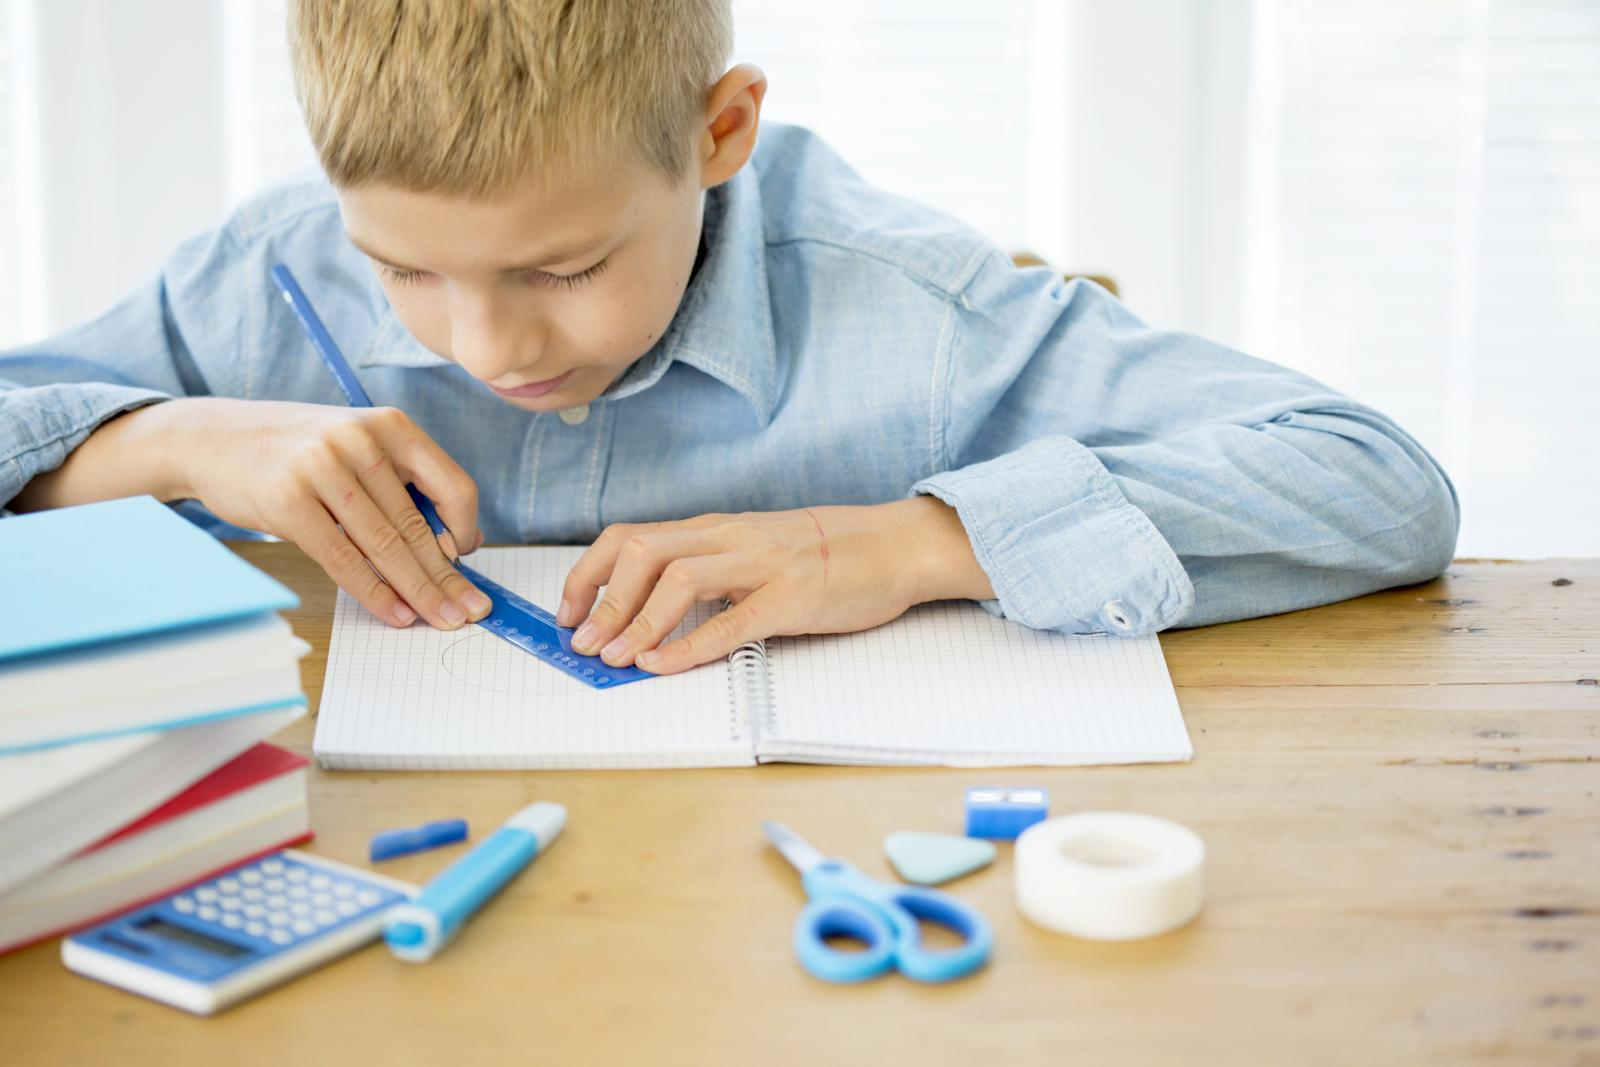 Boy using a ruler